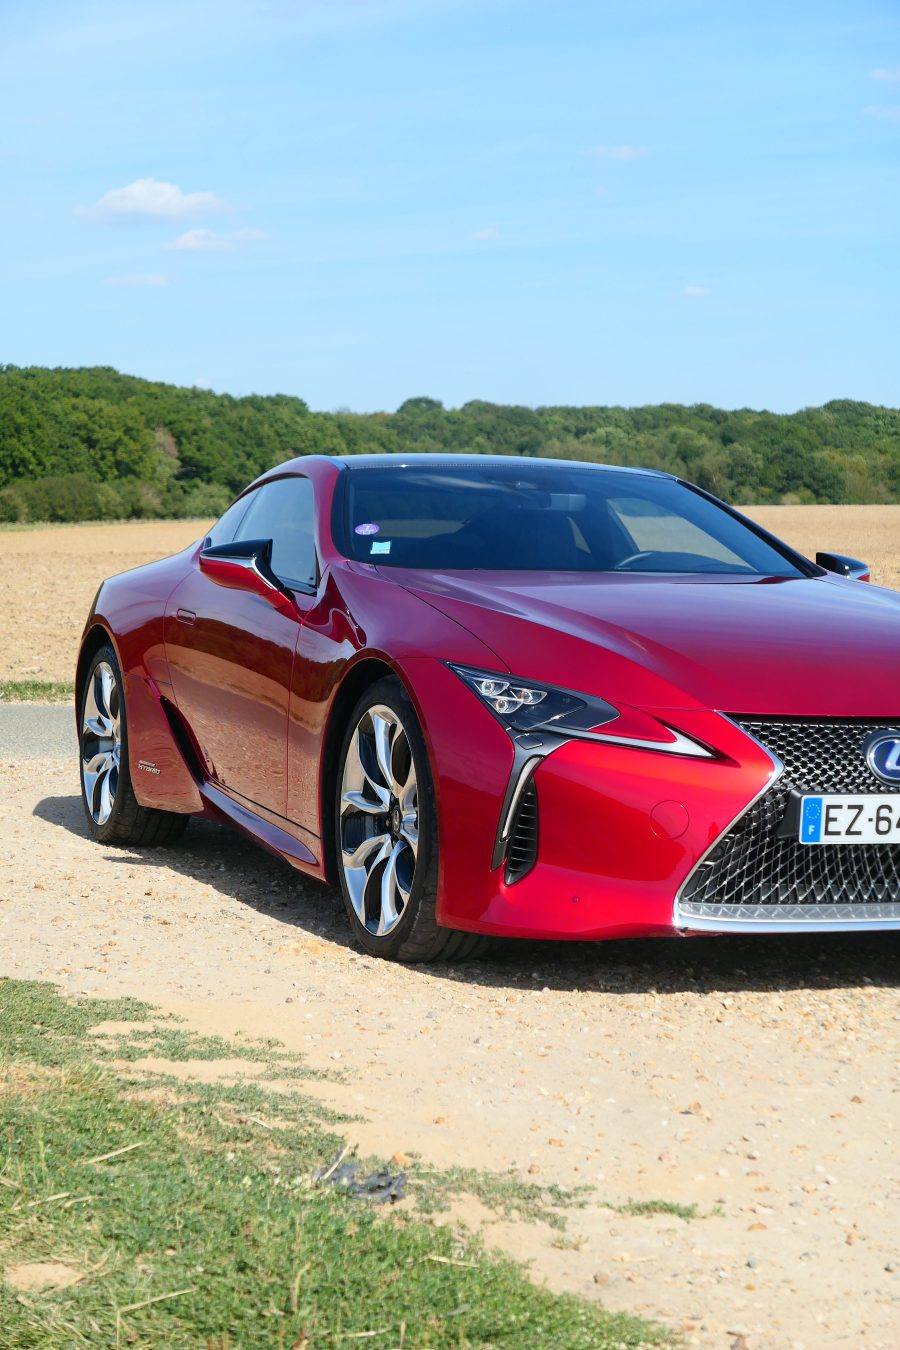 roadrugcars road rug cars lexus LC 500 h LC500h red body